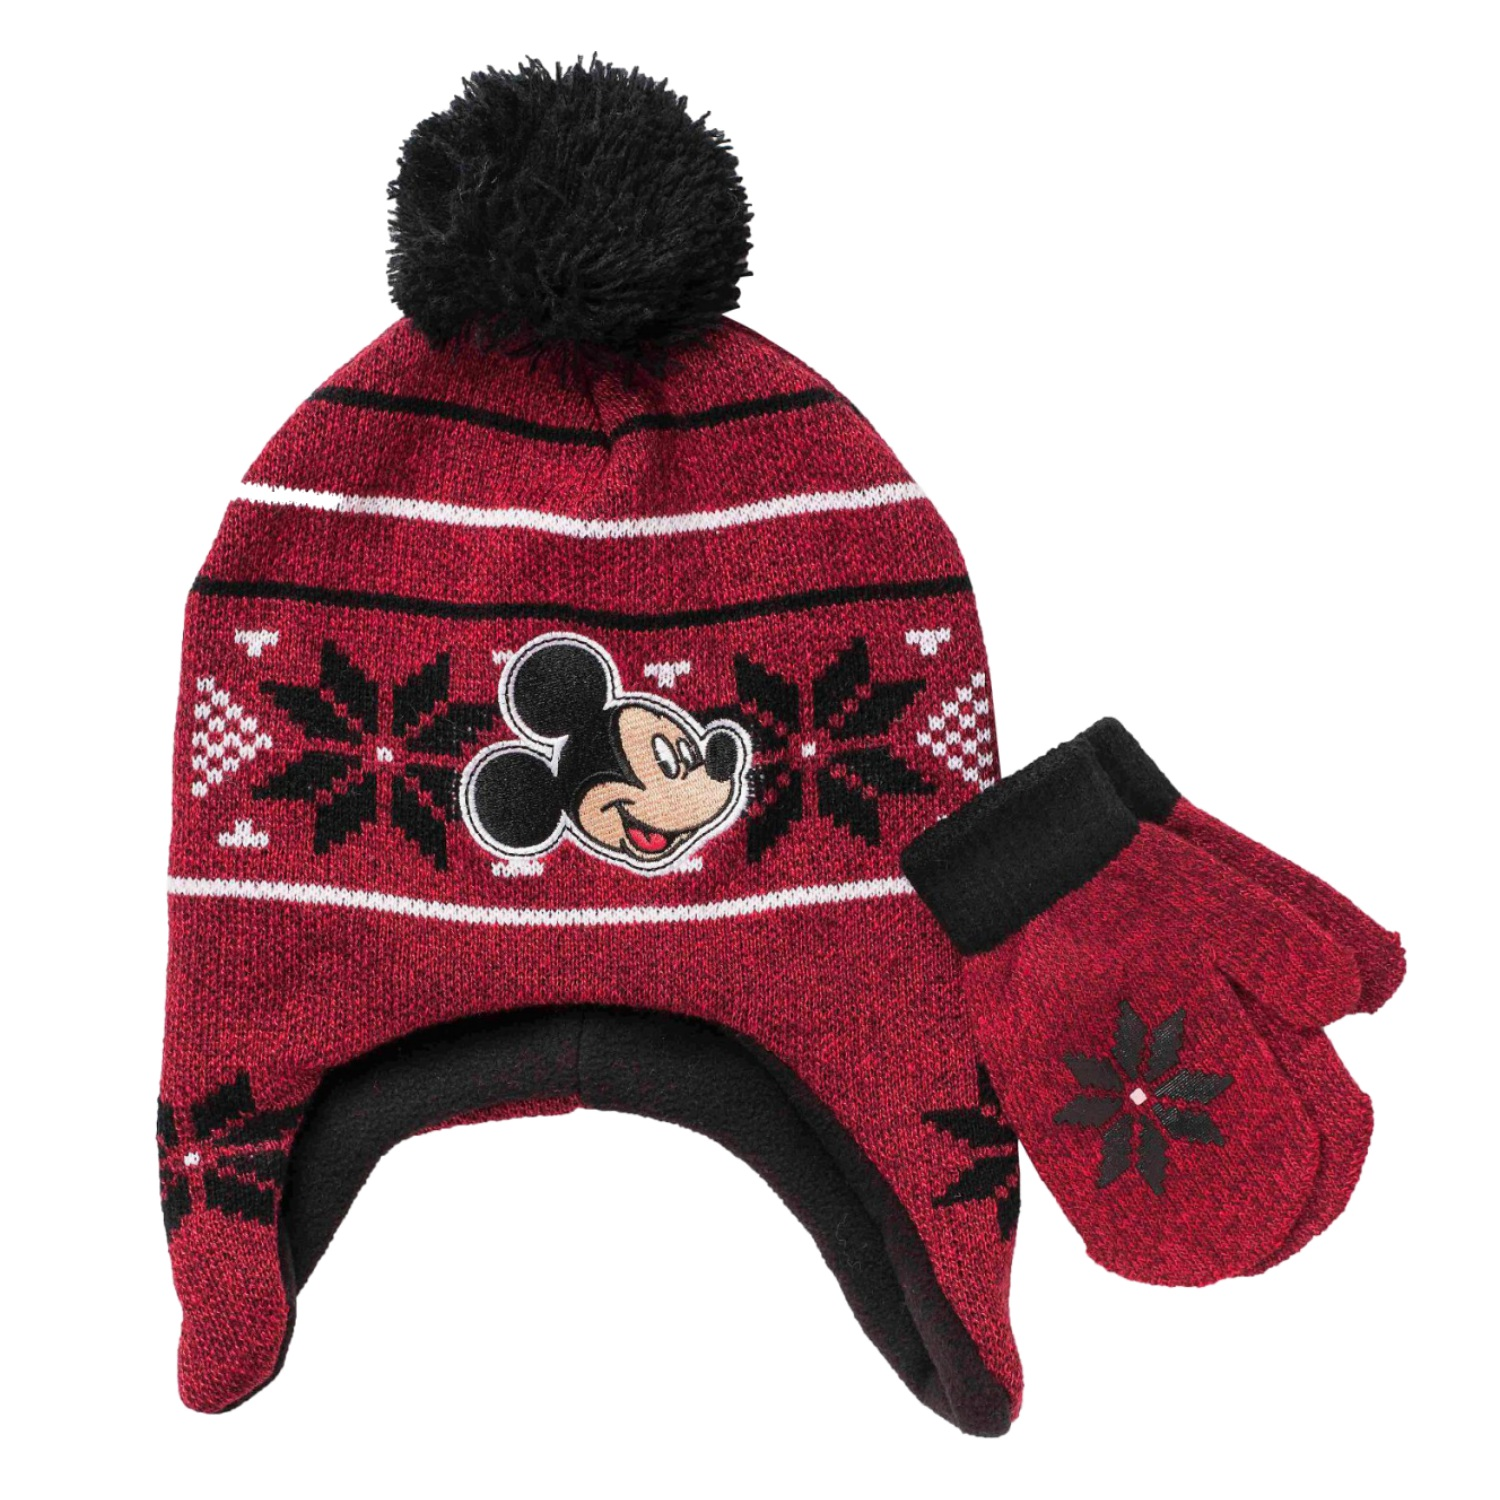 Disney Toddler Boys Mickey Fair Isle Pom Pom Knit Peruvian Hat Mittens Set